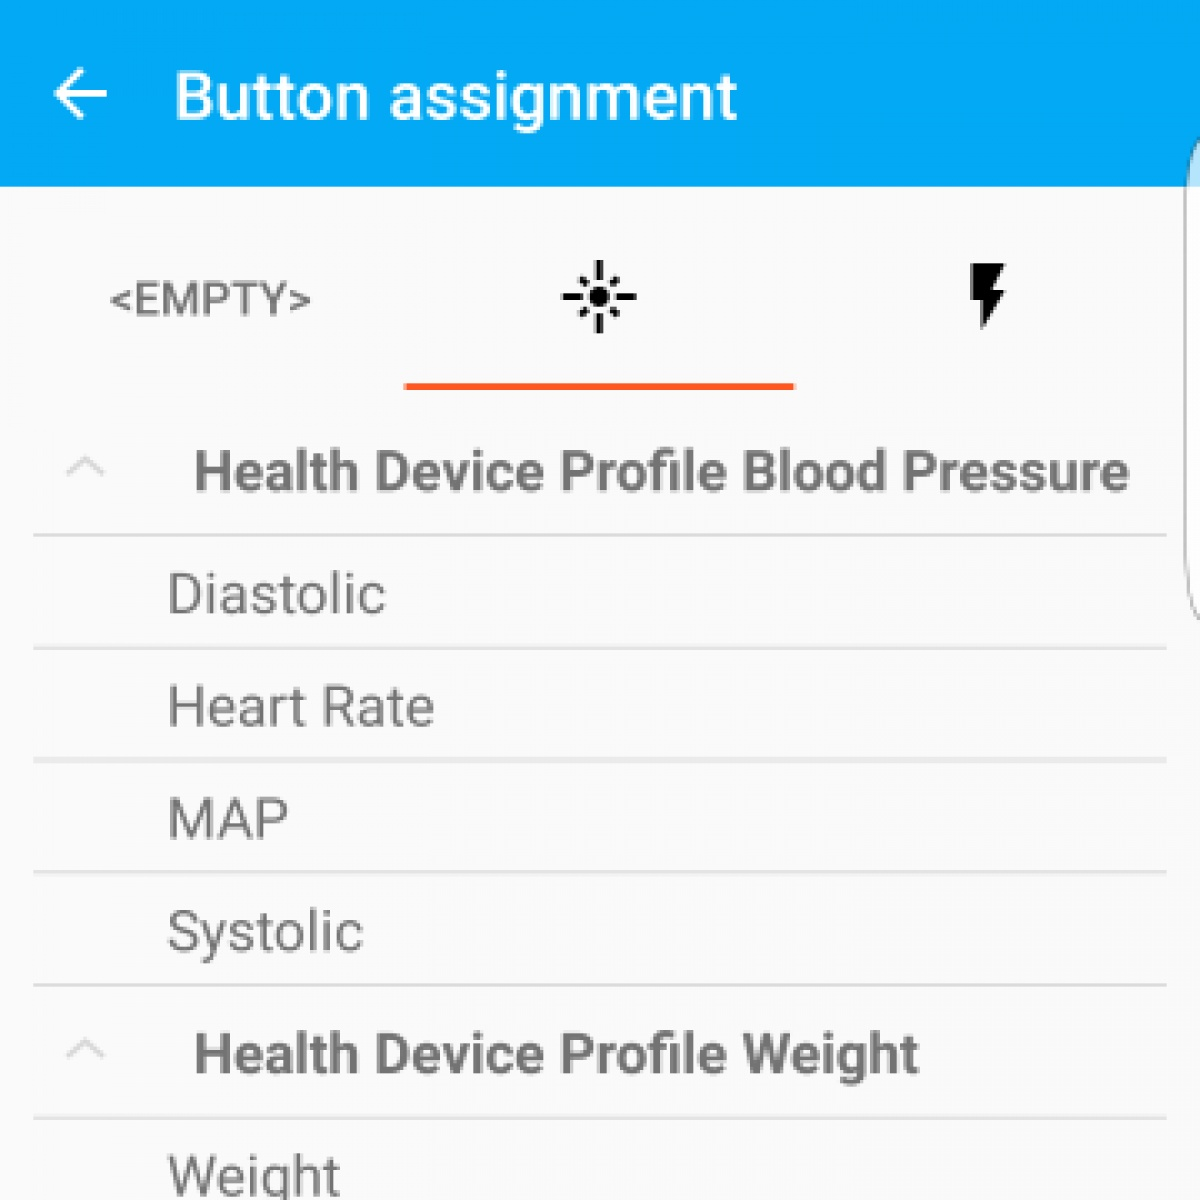 Back to basics -  a few new eHealth sensors supported: Health Device Profile